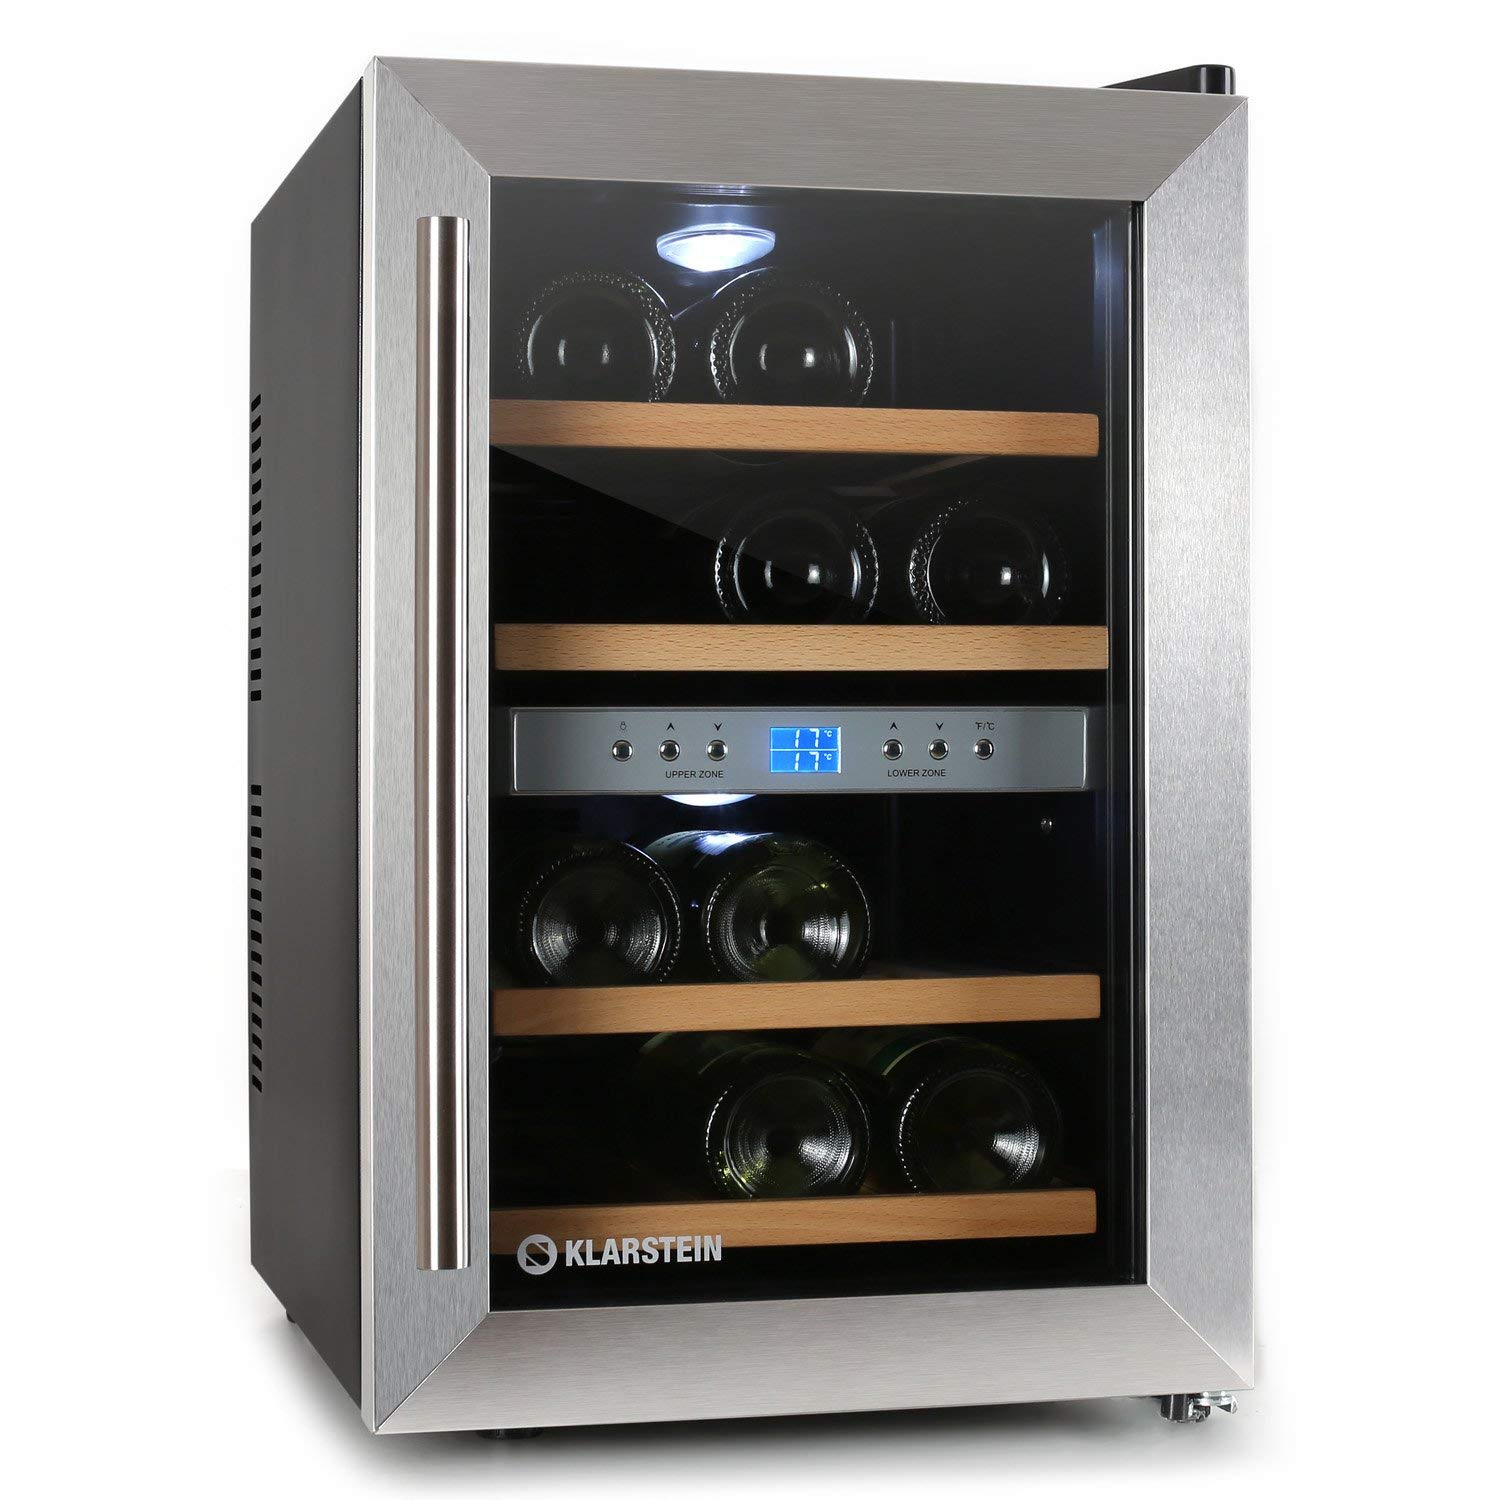 Klarstein Freestanding Stainless Steel 12 Bottle(s) – Wine Cooler